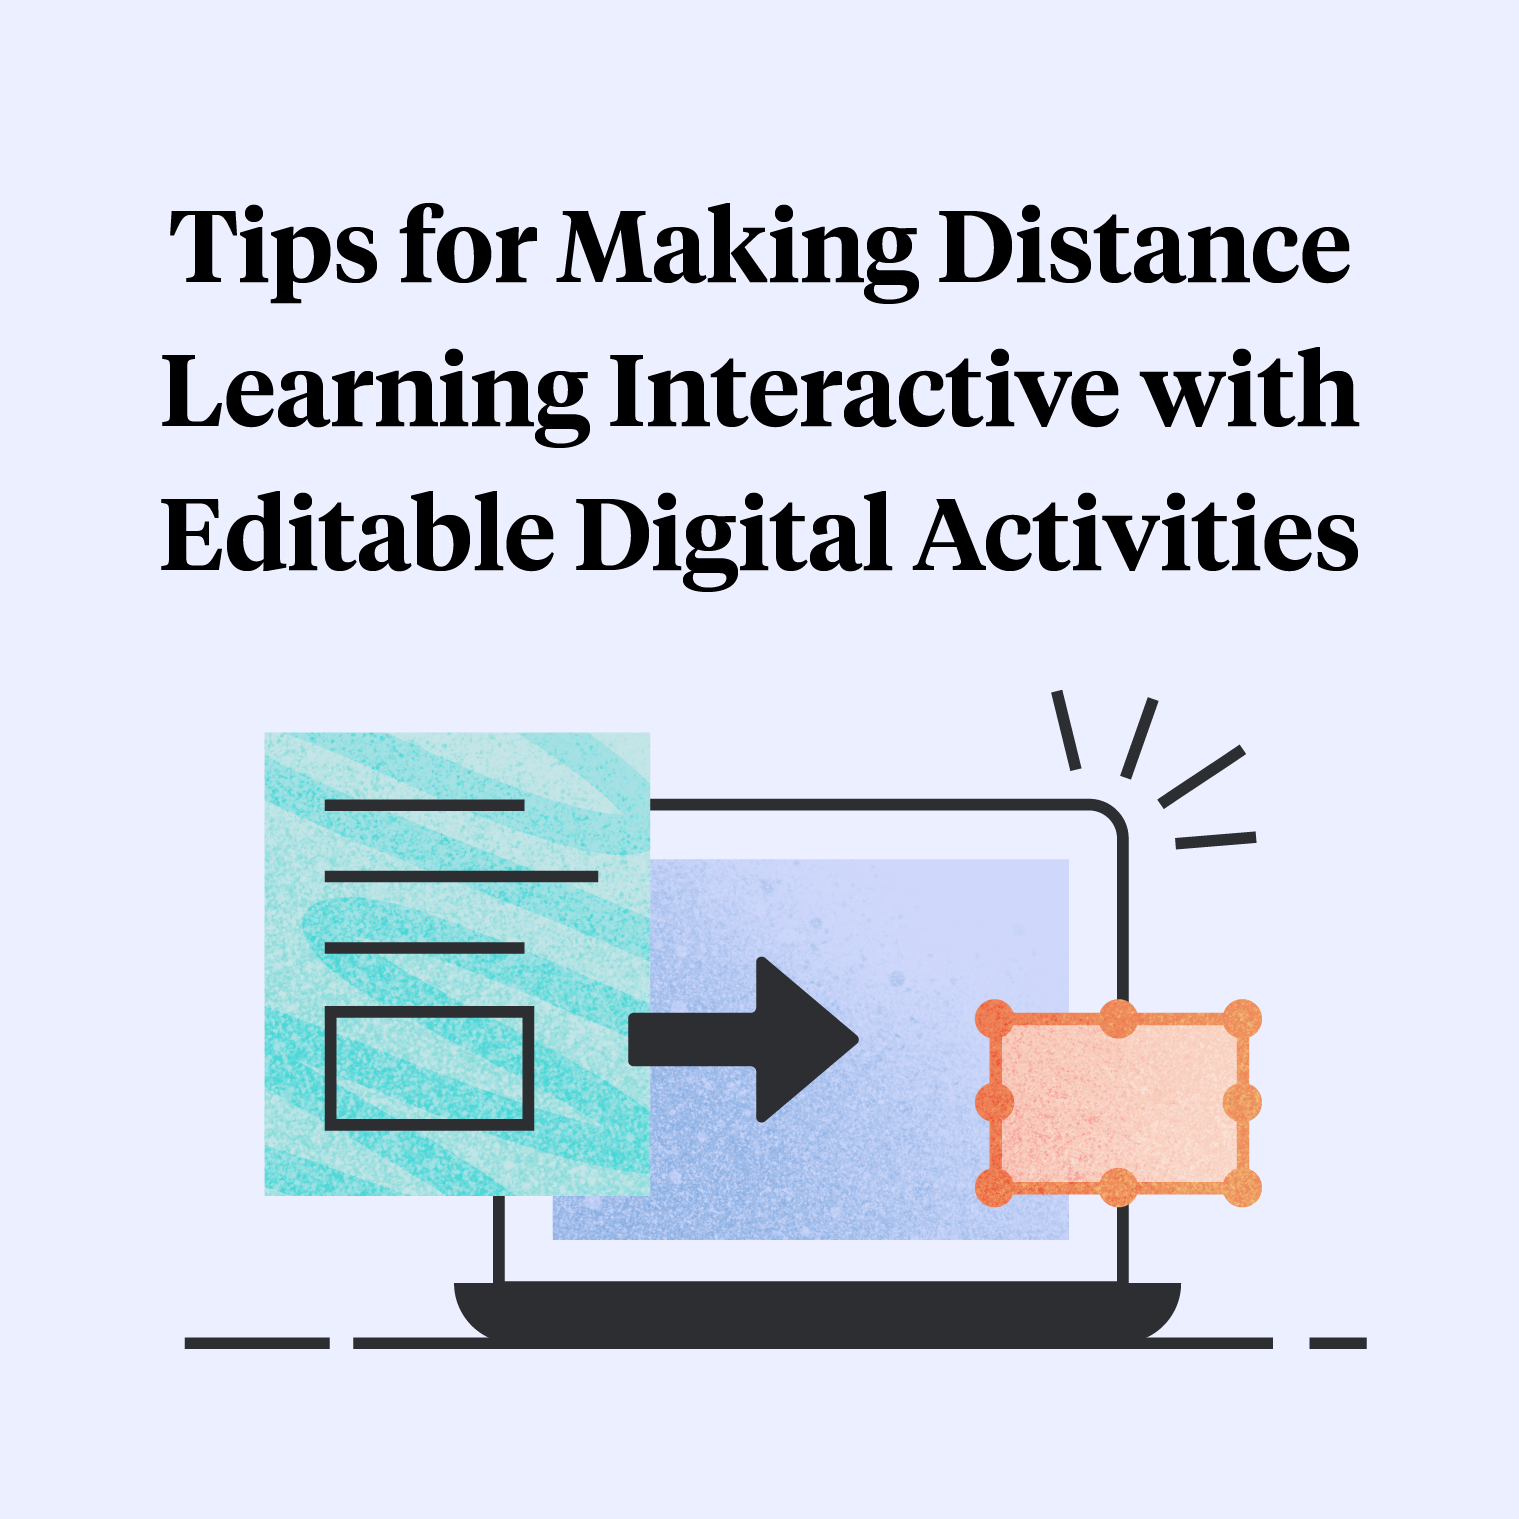 9 Tips for Making Distance Learning Interactive